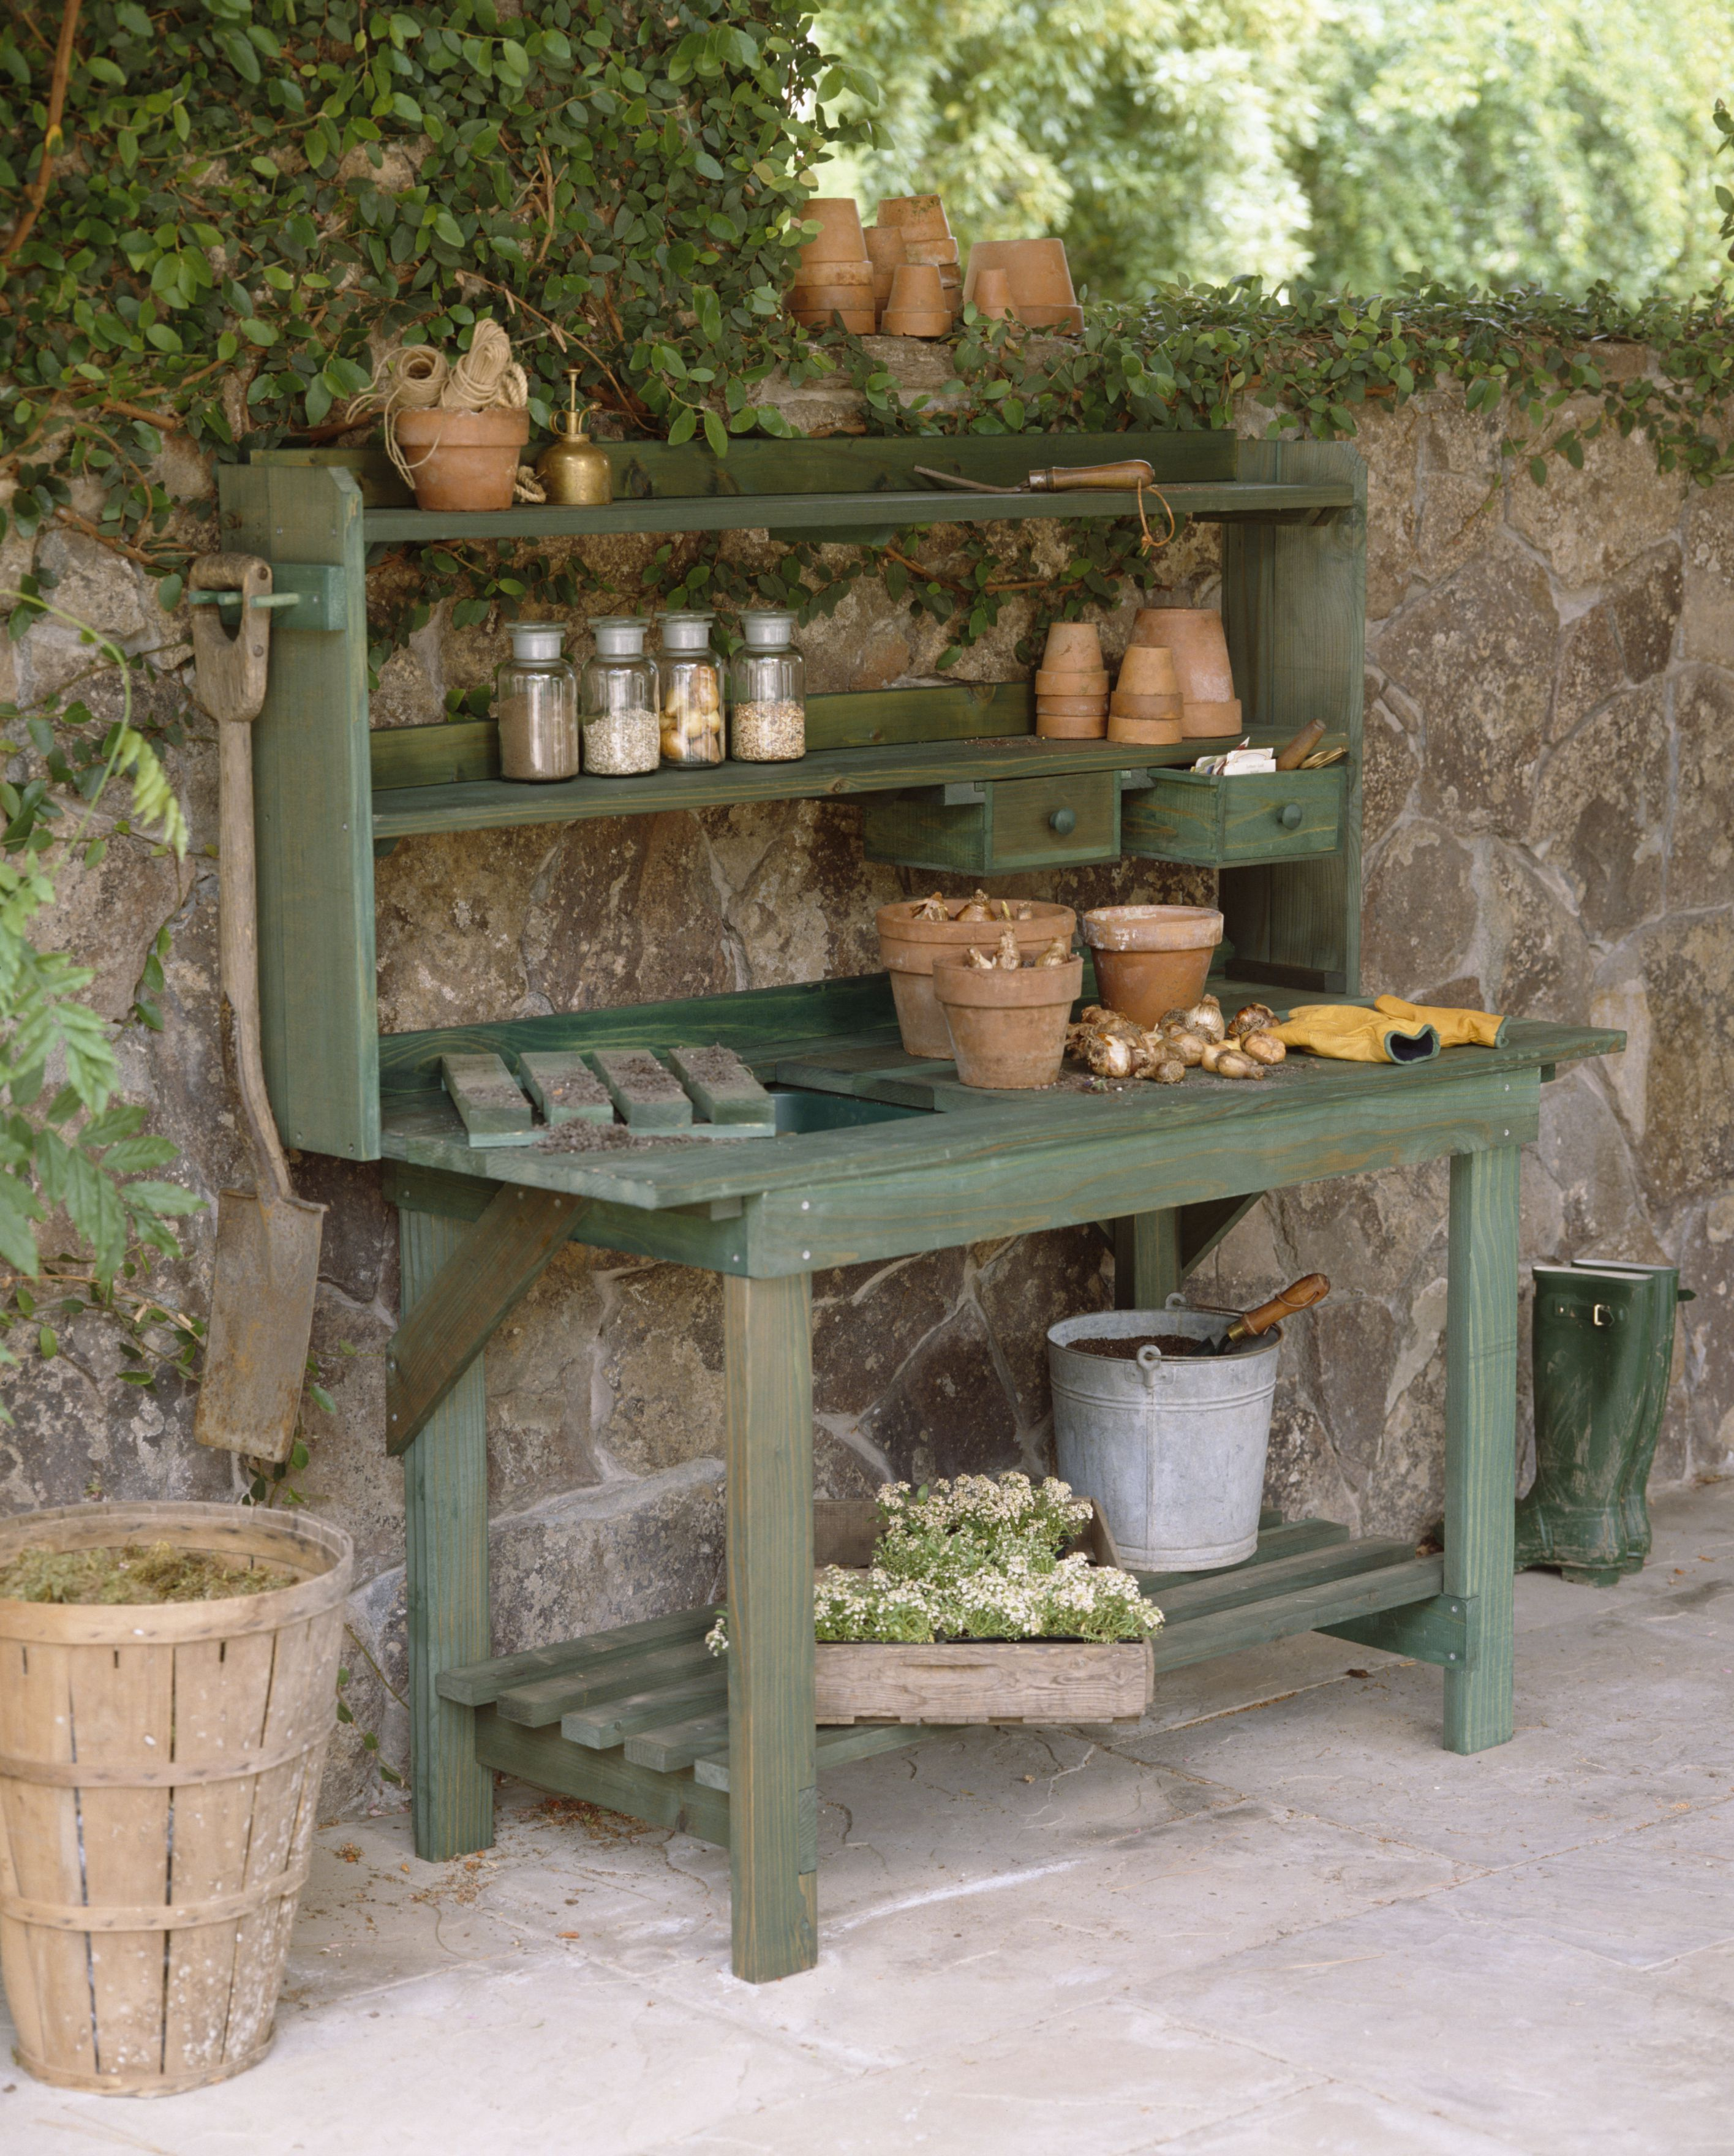 Garden Potting Bench: What To Look For In A Potting Bench